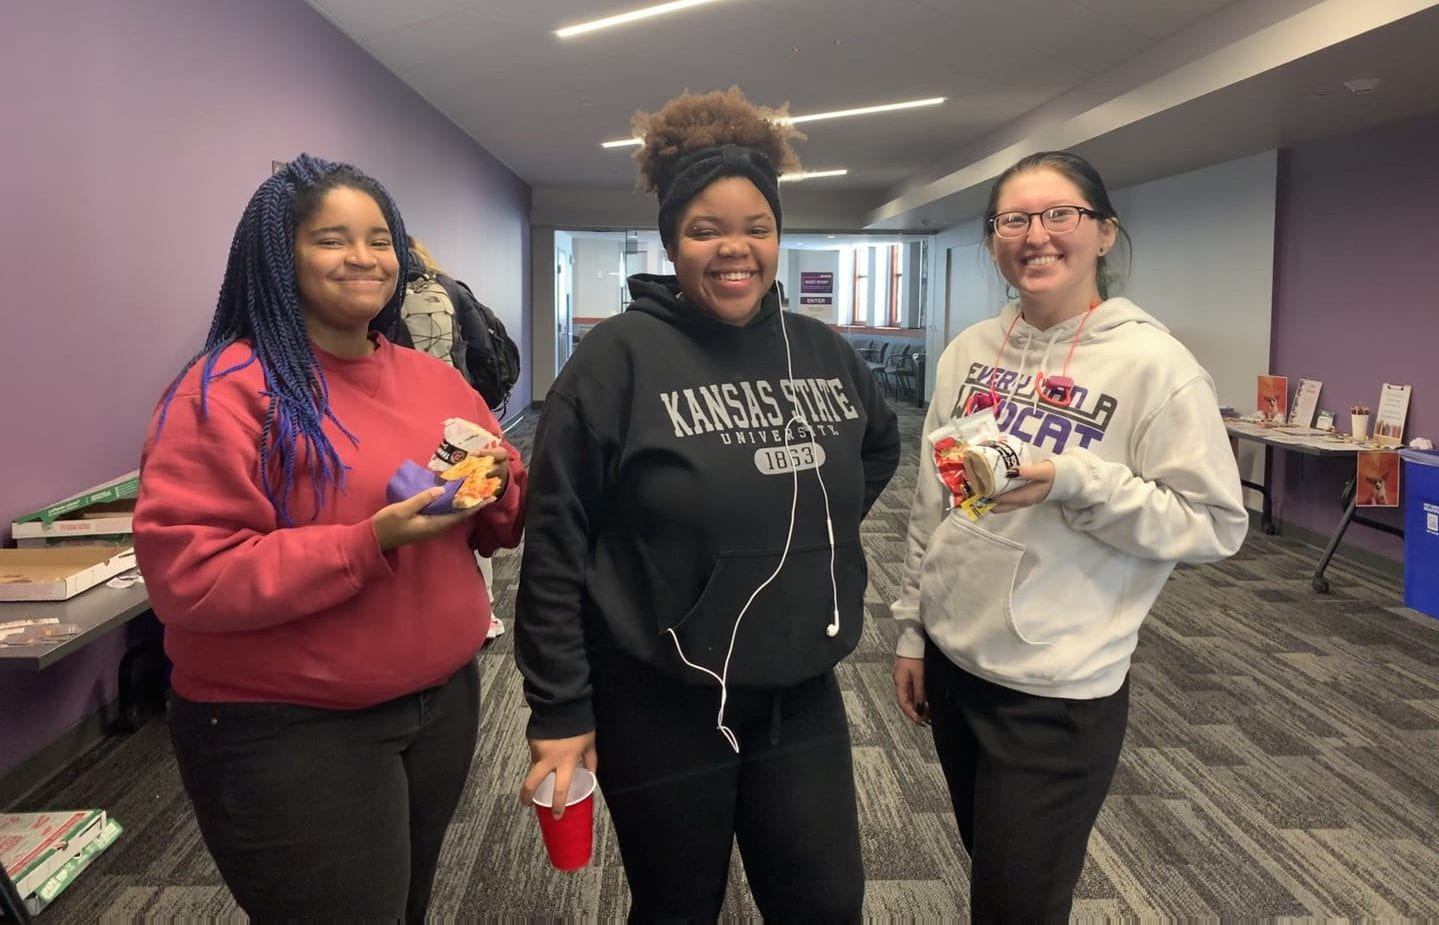 Three students smile while holding food and drinks in Hale Library.